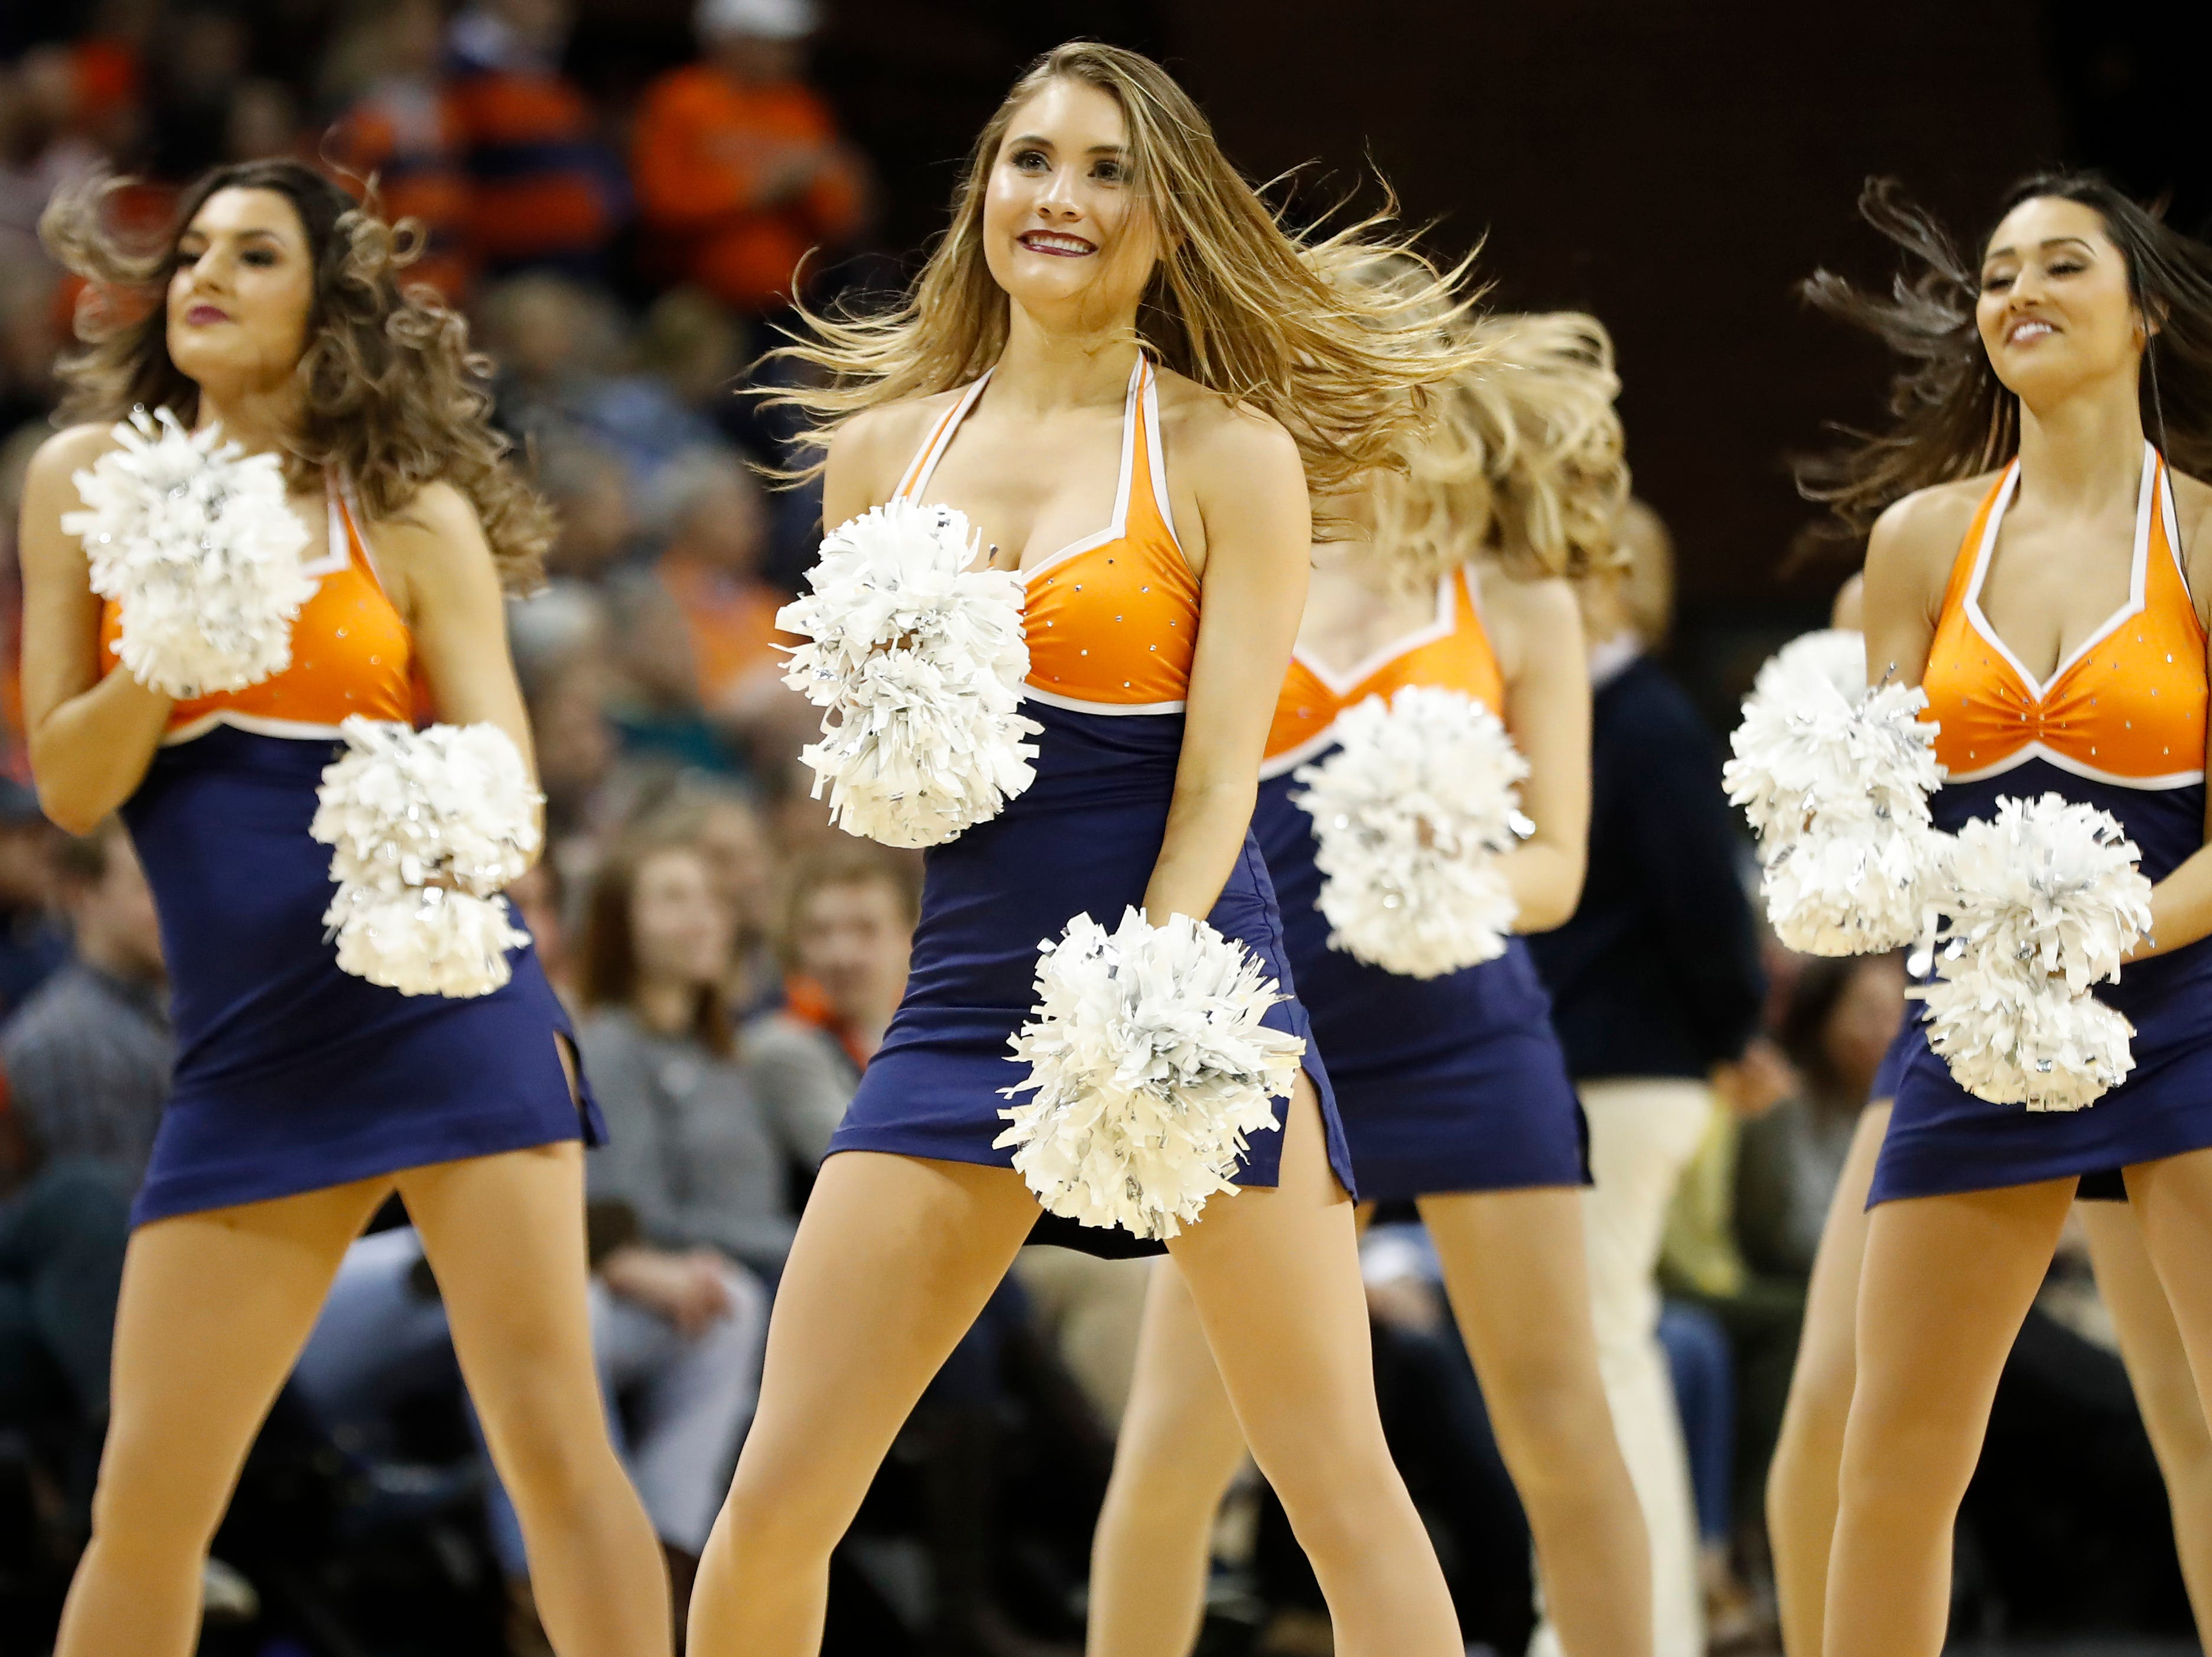 Jan 5, 2019; Charlottesville, VA, USA; Members of the Virginia Cavaliers dance team dance on the court during a timeout against the Florida State Seminoles in the second half at John Paul Jones Arena. Mandatory Credit: Geoff Burke-USA TODAY Sports